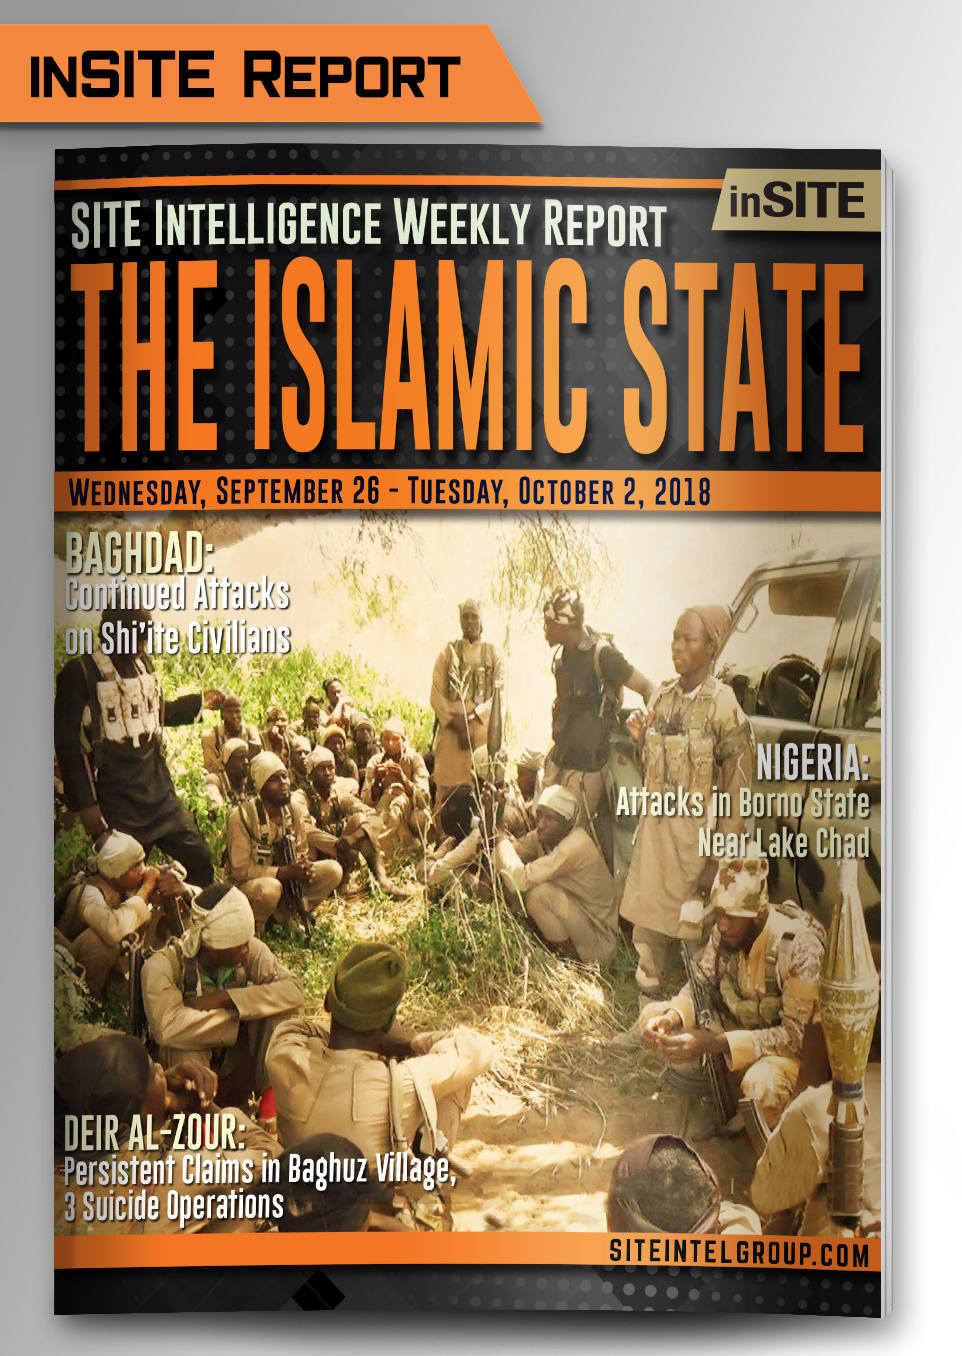 Weekly inSITE on the Islamic State for September 26-October 2, 2018